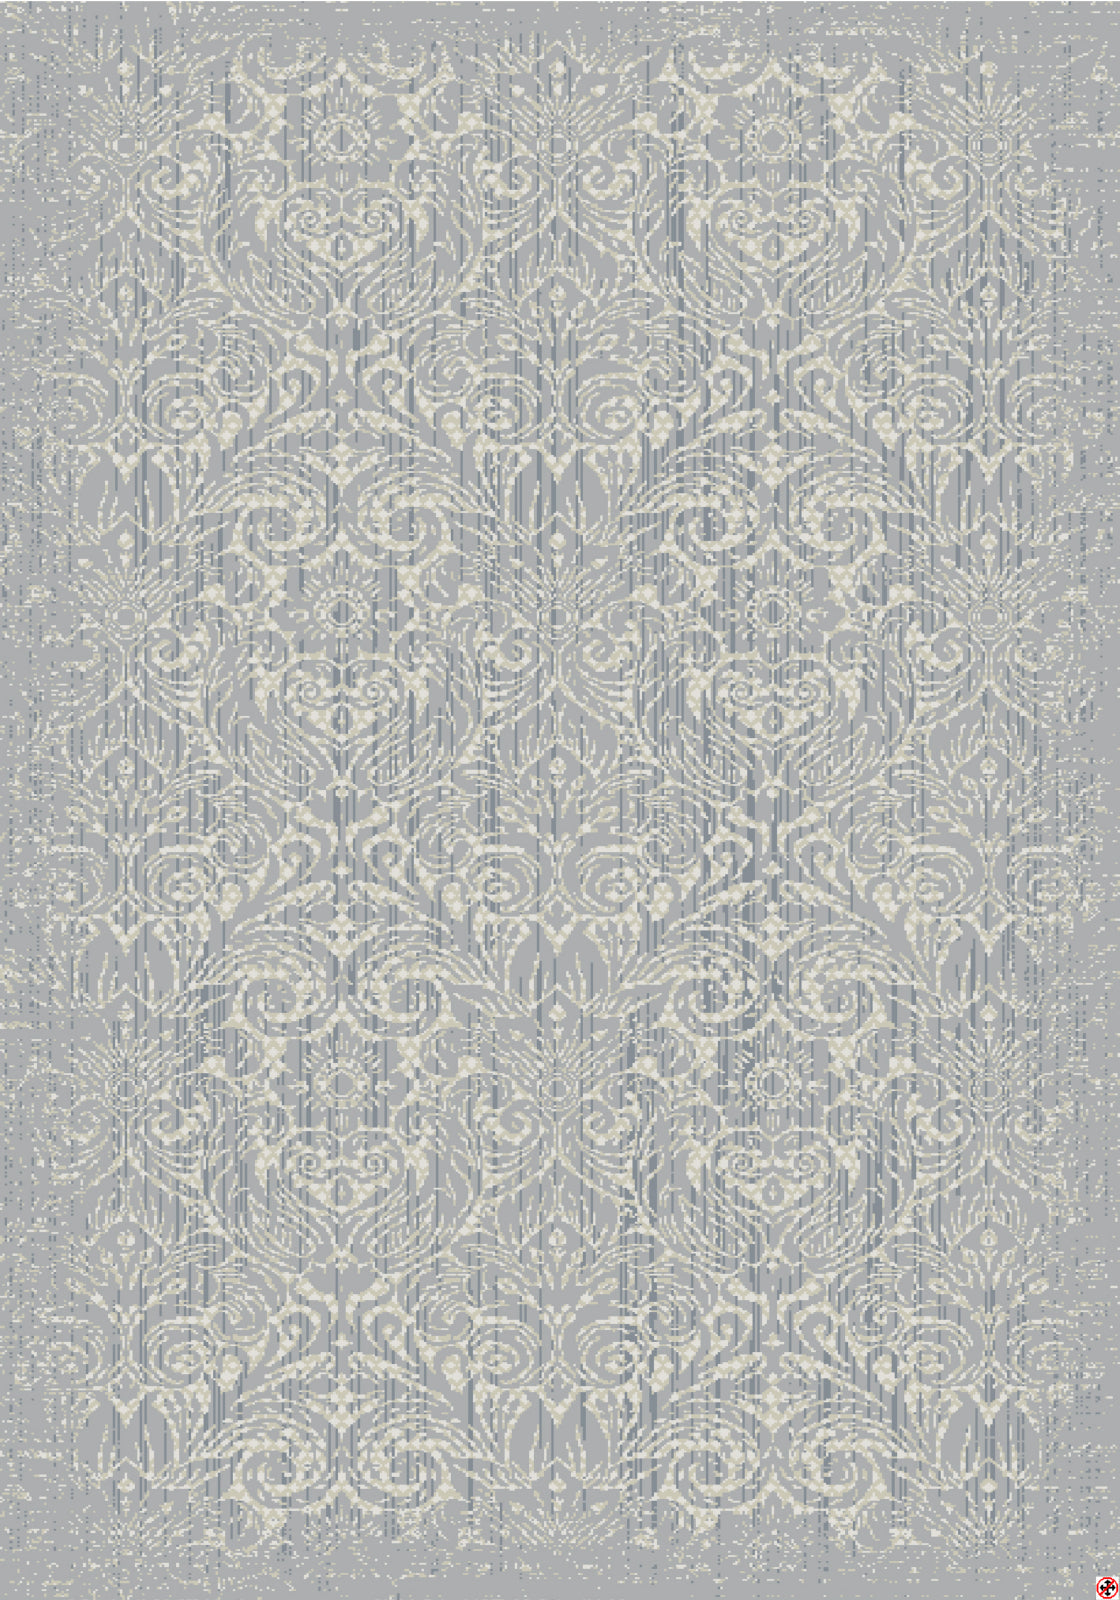 Karastan Euphoria Barrow Willow Gray Area Rug main image